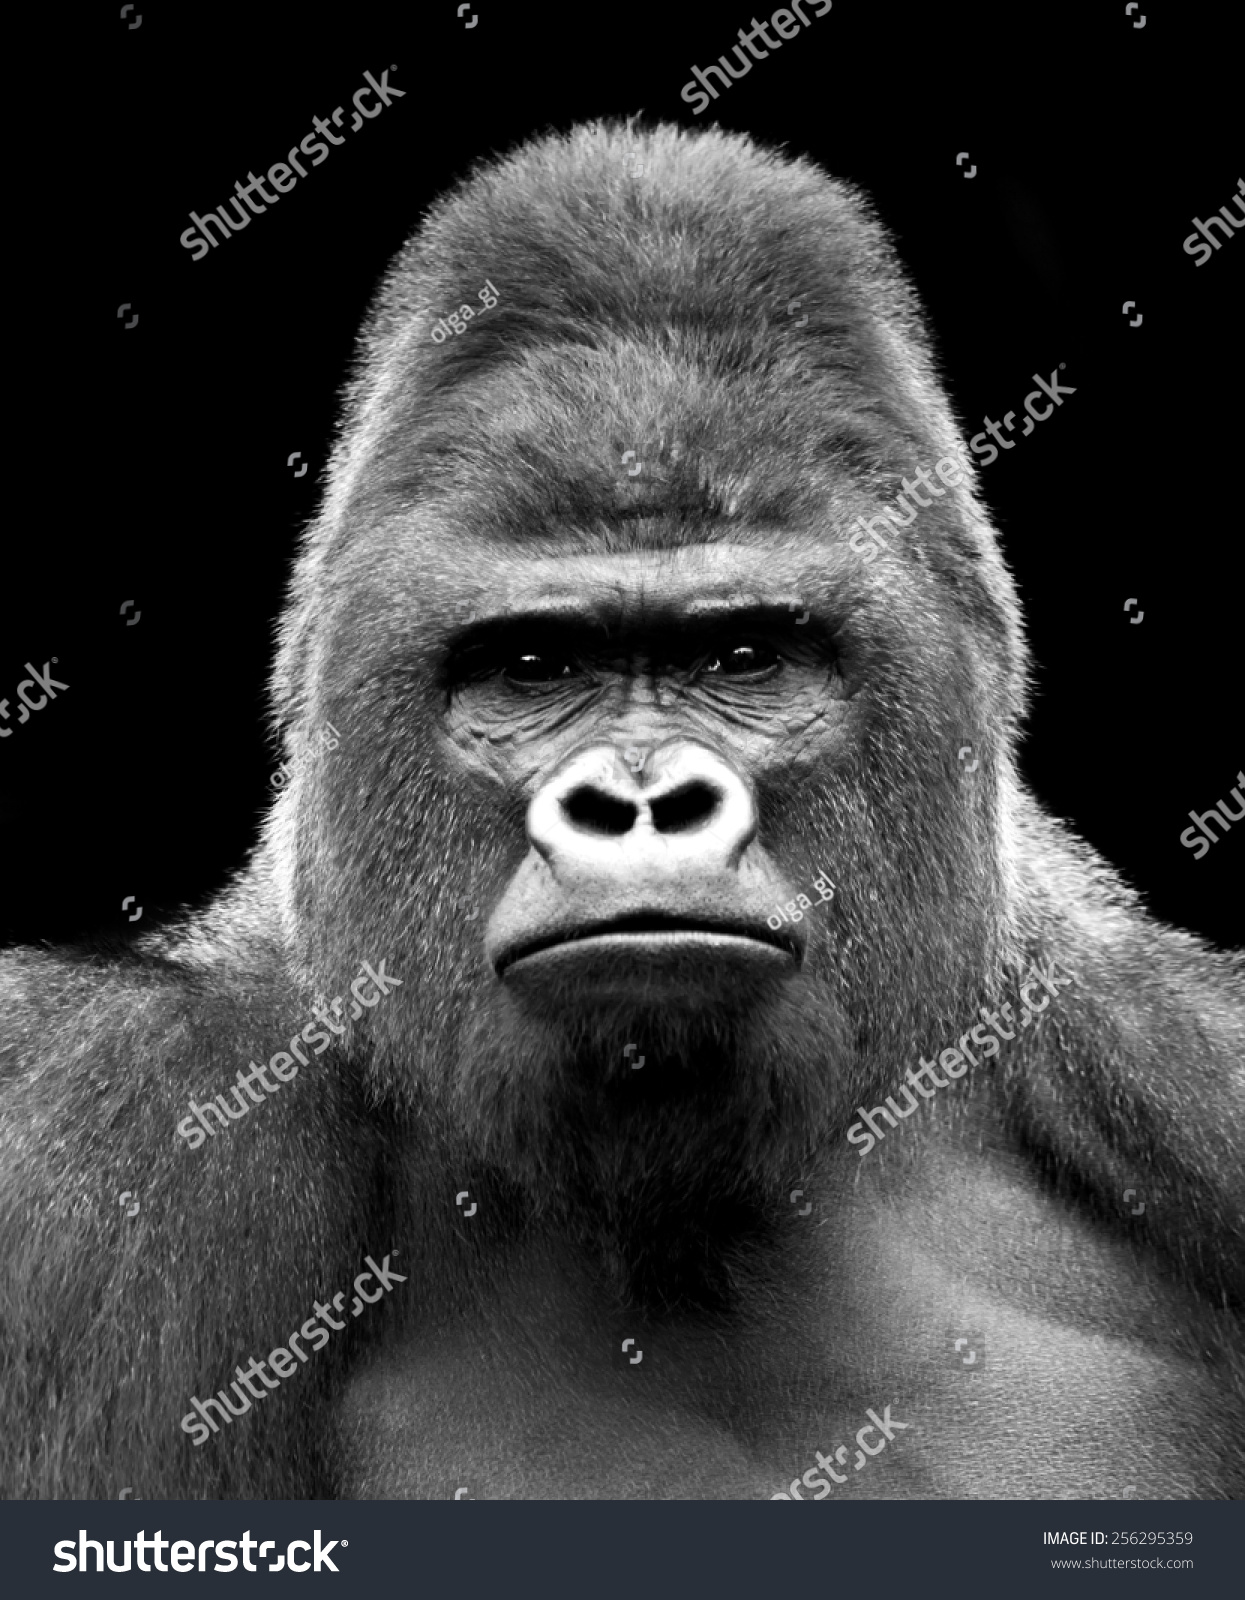 royalty free black and white closeup portrait of a 256295359 stock